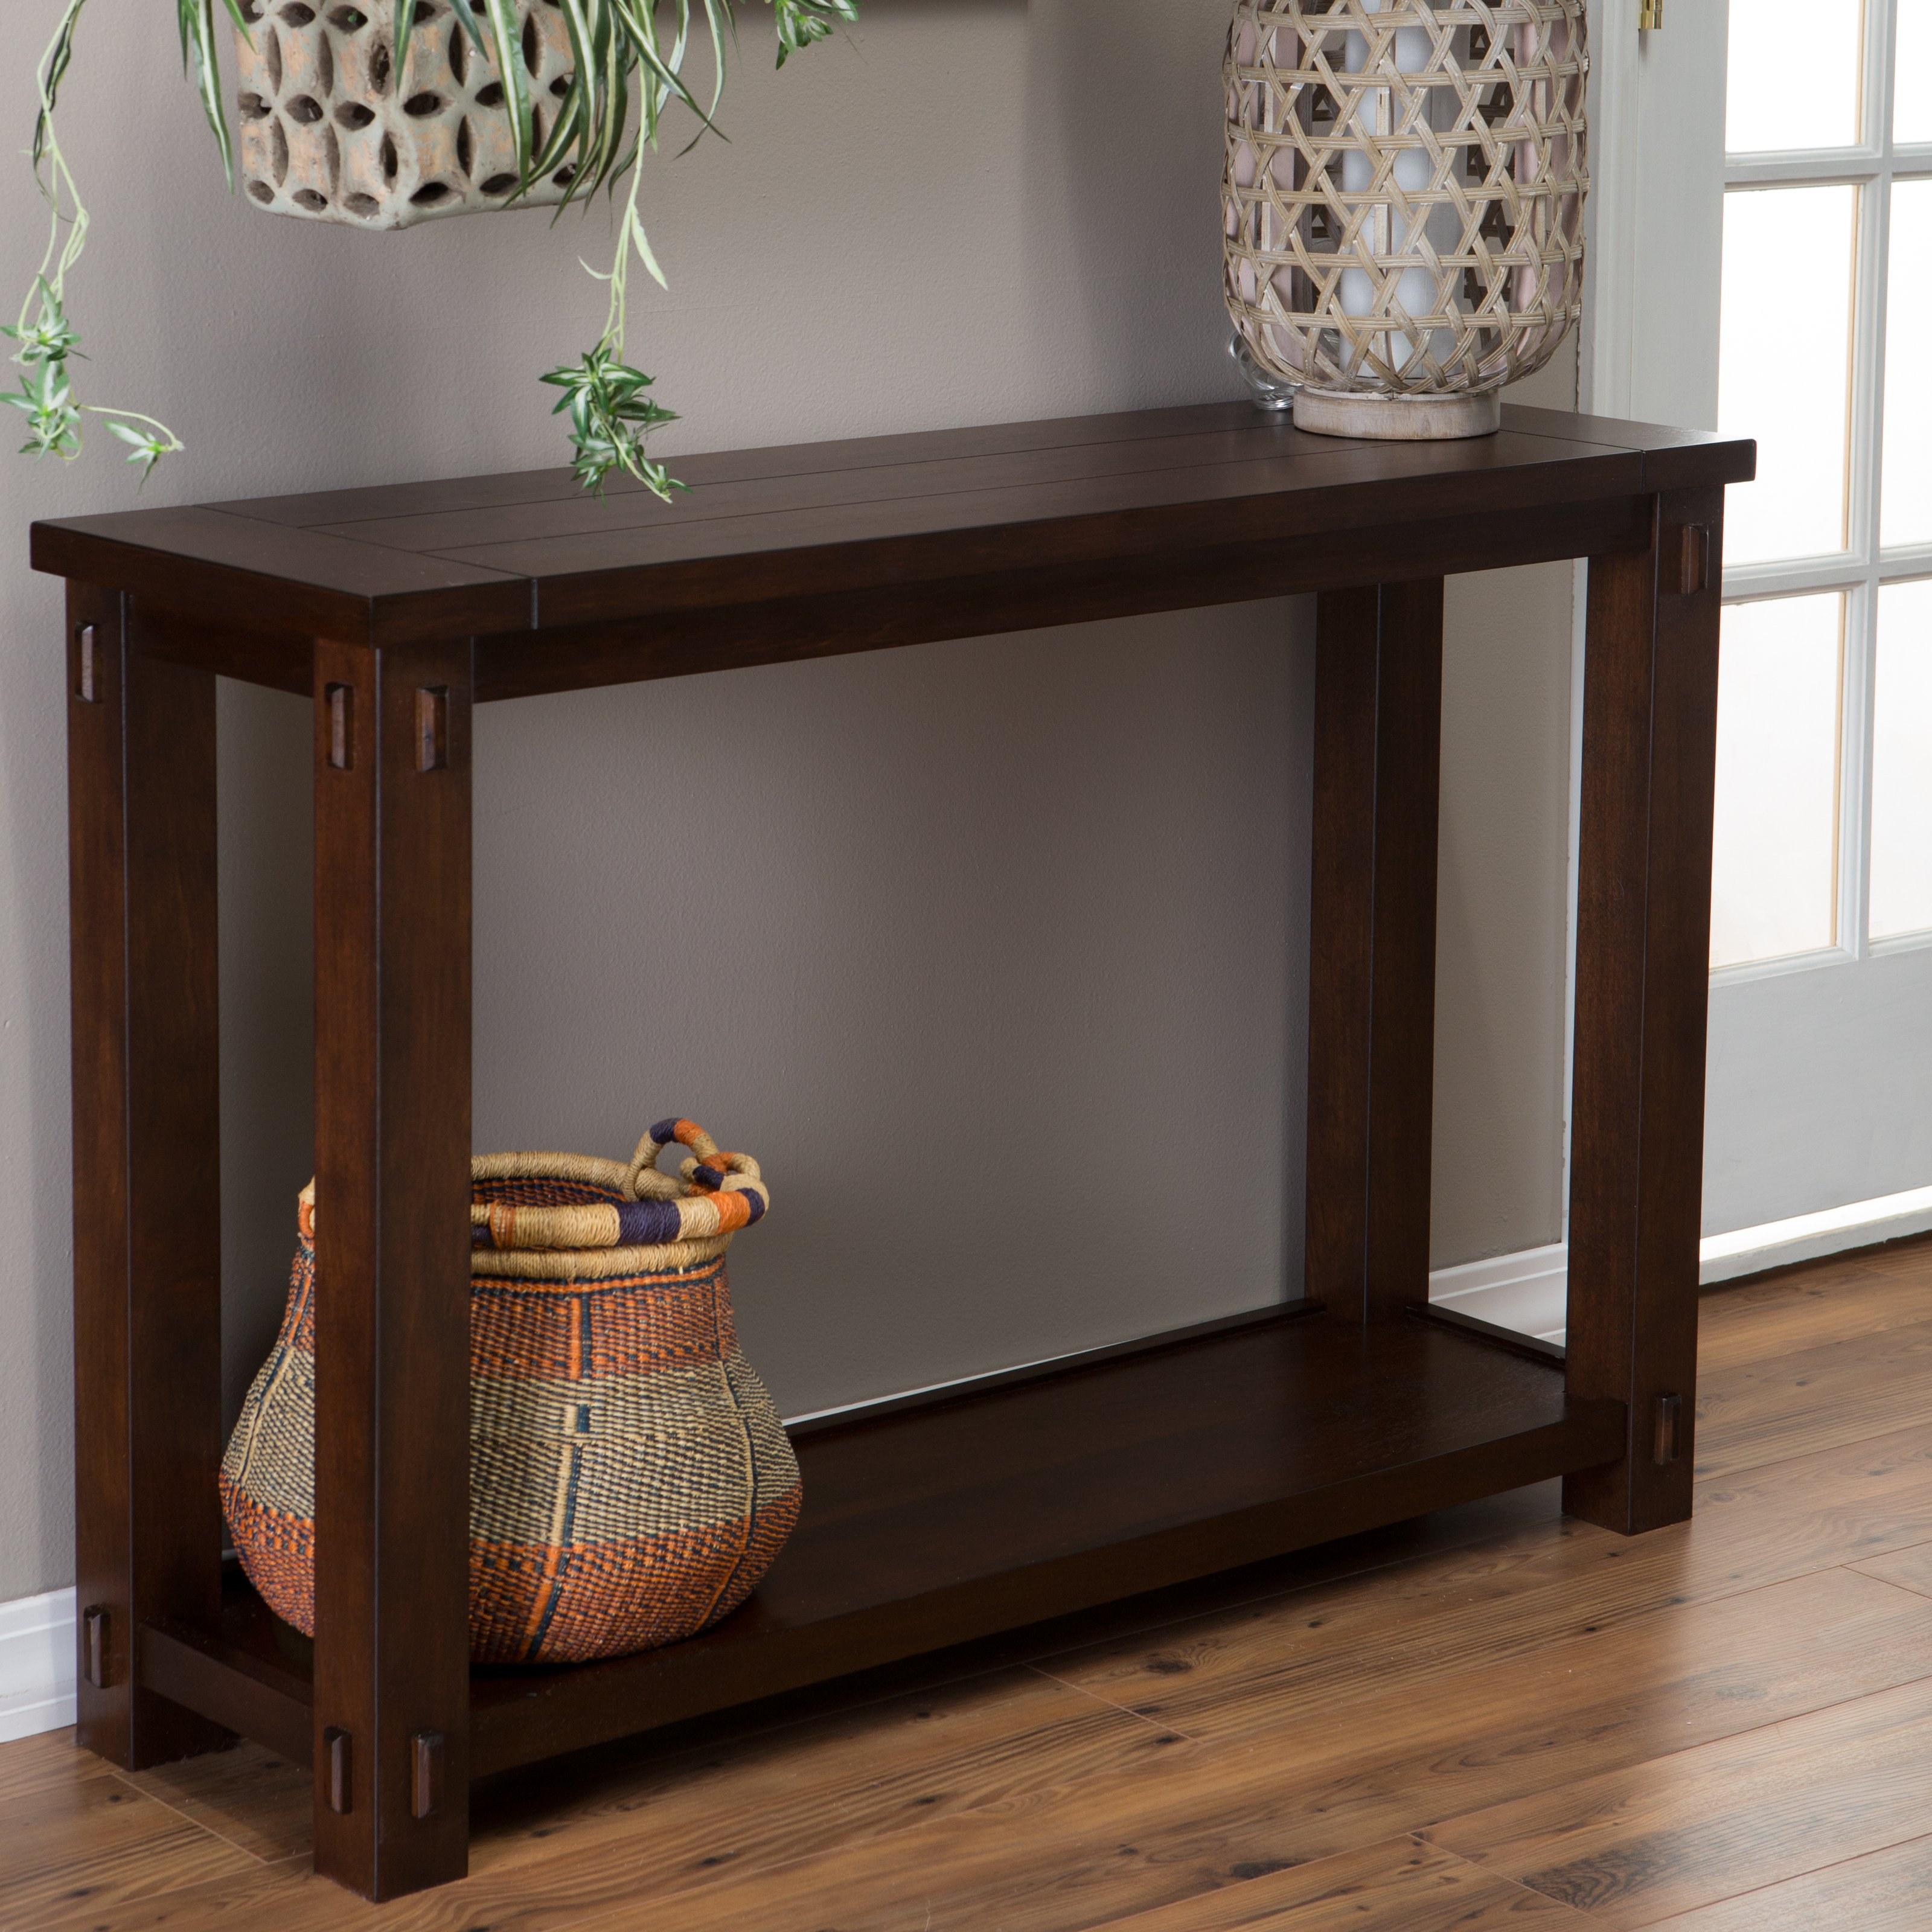 Get an attractive look at your house with console tables